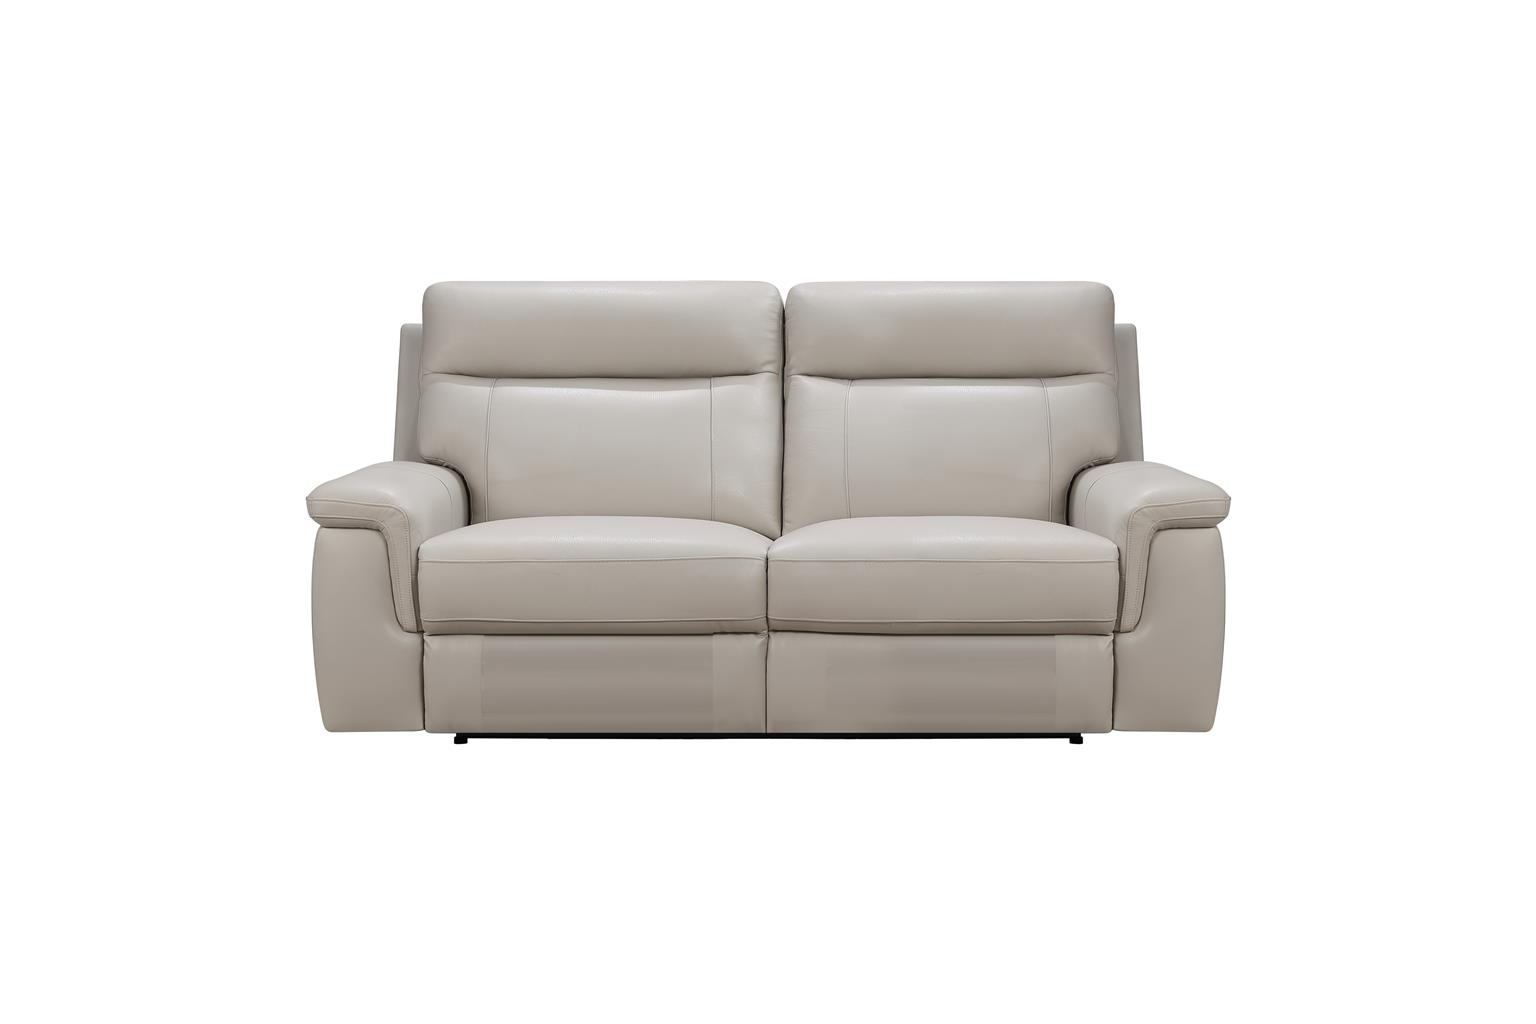 LOUNGE SUITE BRAND NEW VALERIA 3 PIECE COUCH FOR ONLY R 19 999!!!!!!!!!!!!!!!!!!!!!!!